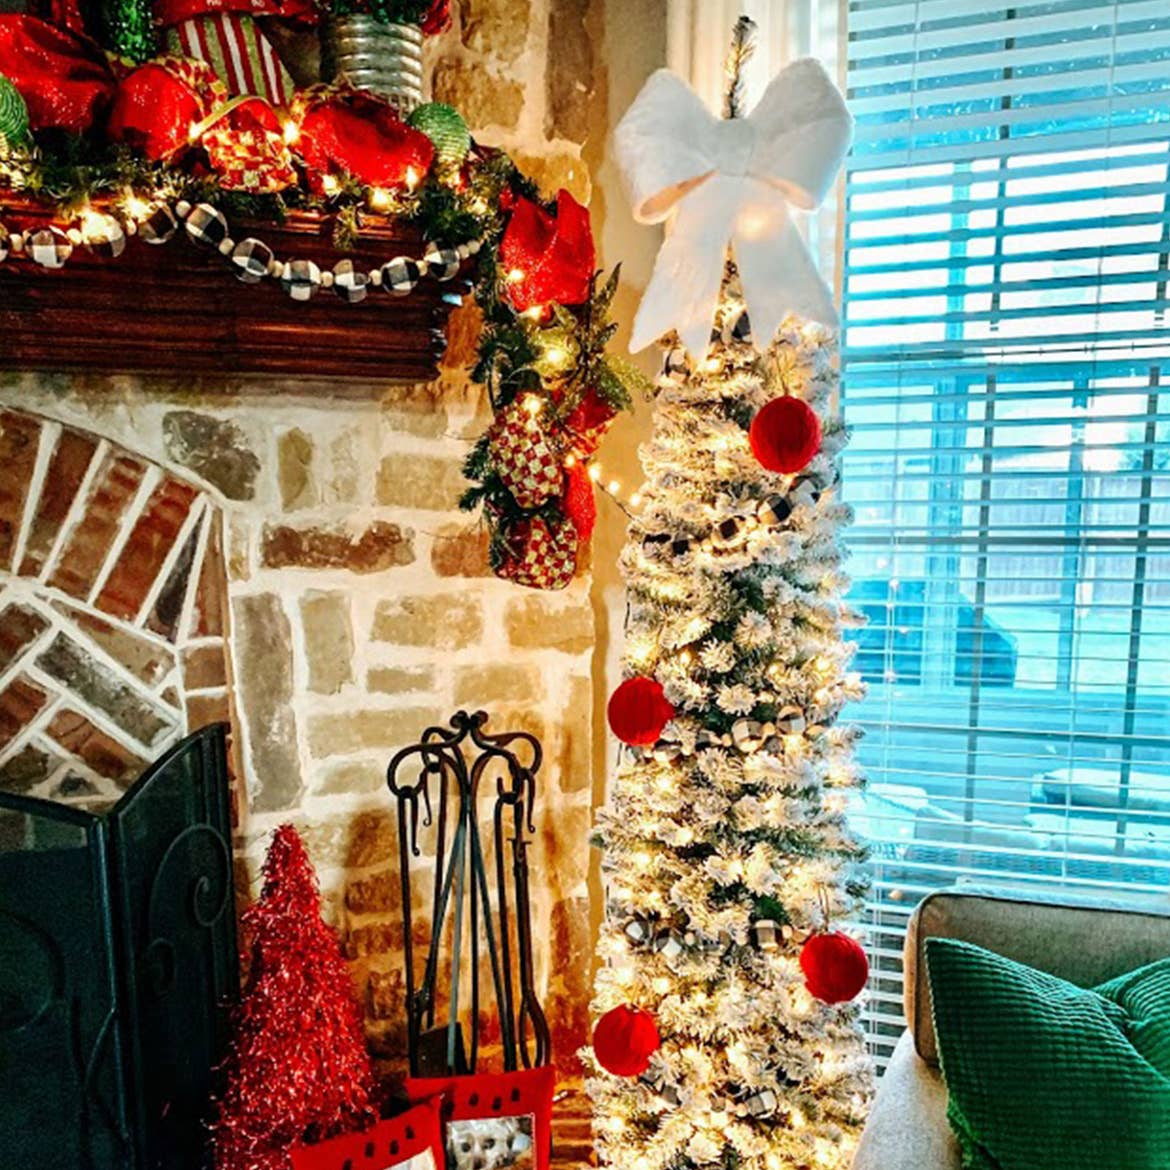 A small 'pencil tree' decked out in holiday decor next to a mantle.